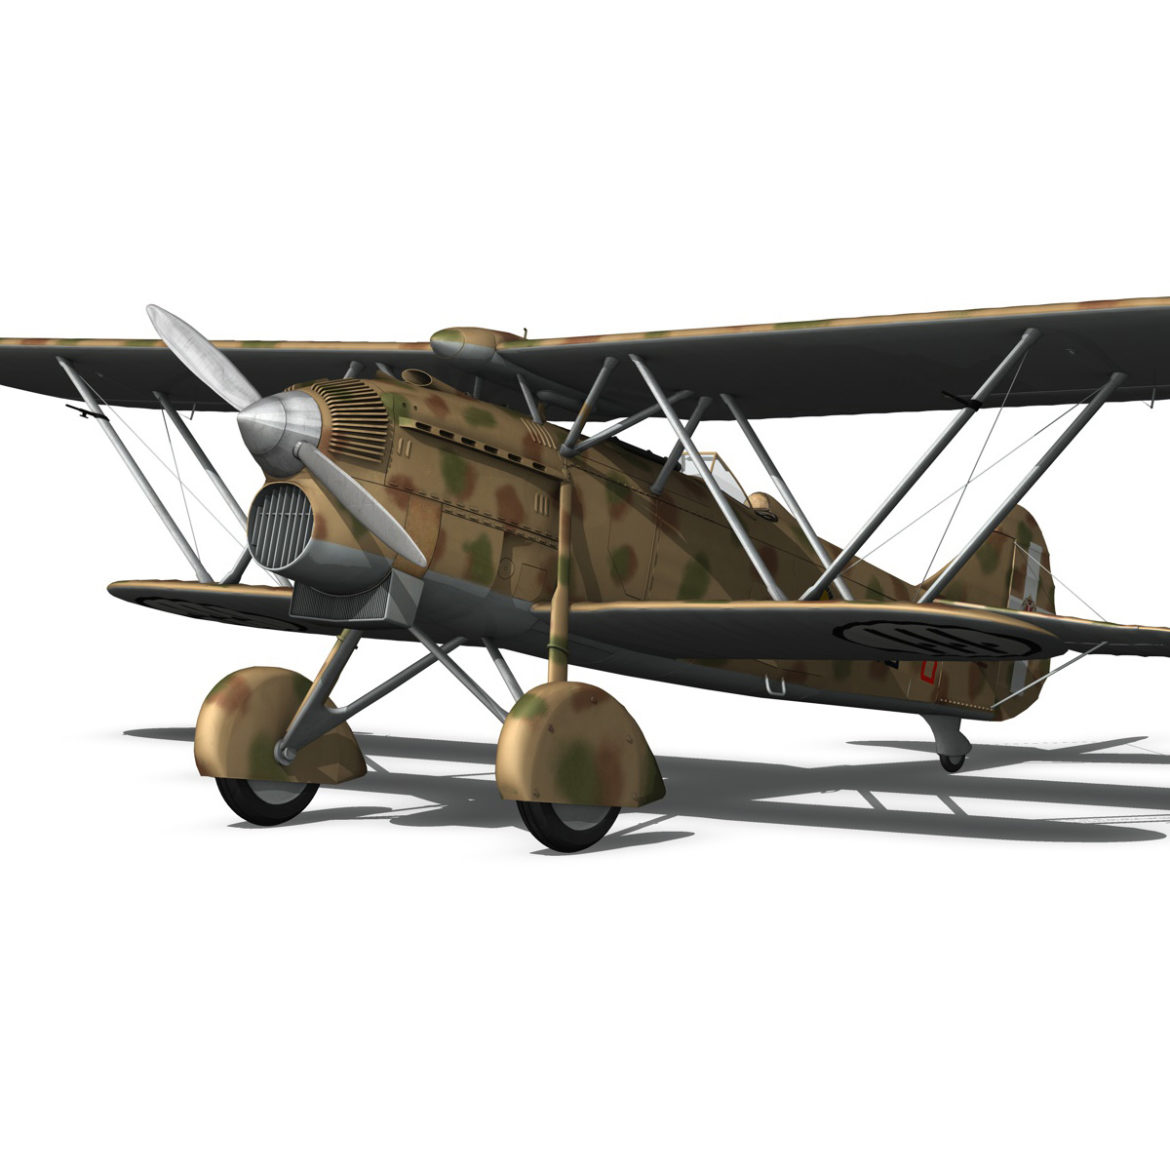 fiat cr.32 – italy airforce – 410 squadriglia 3d model fbx c4d lwo obj 307555